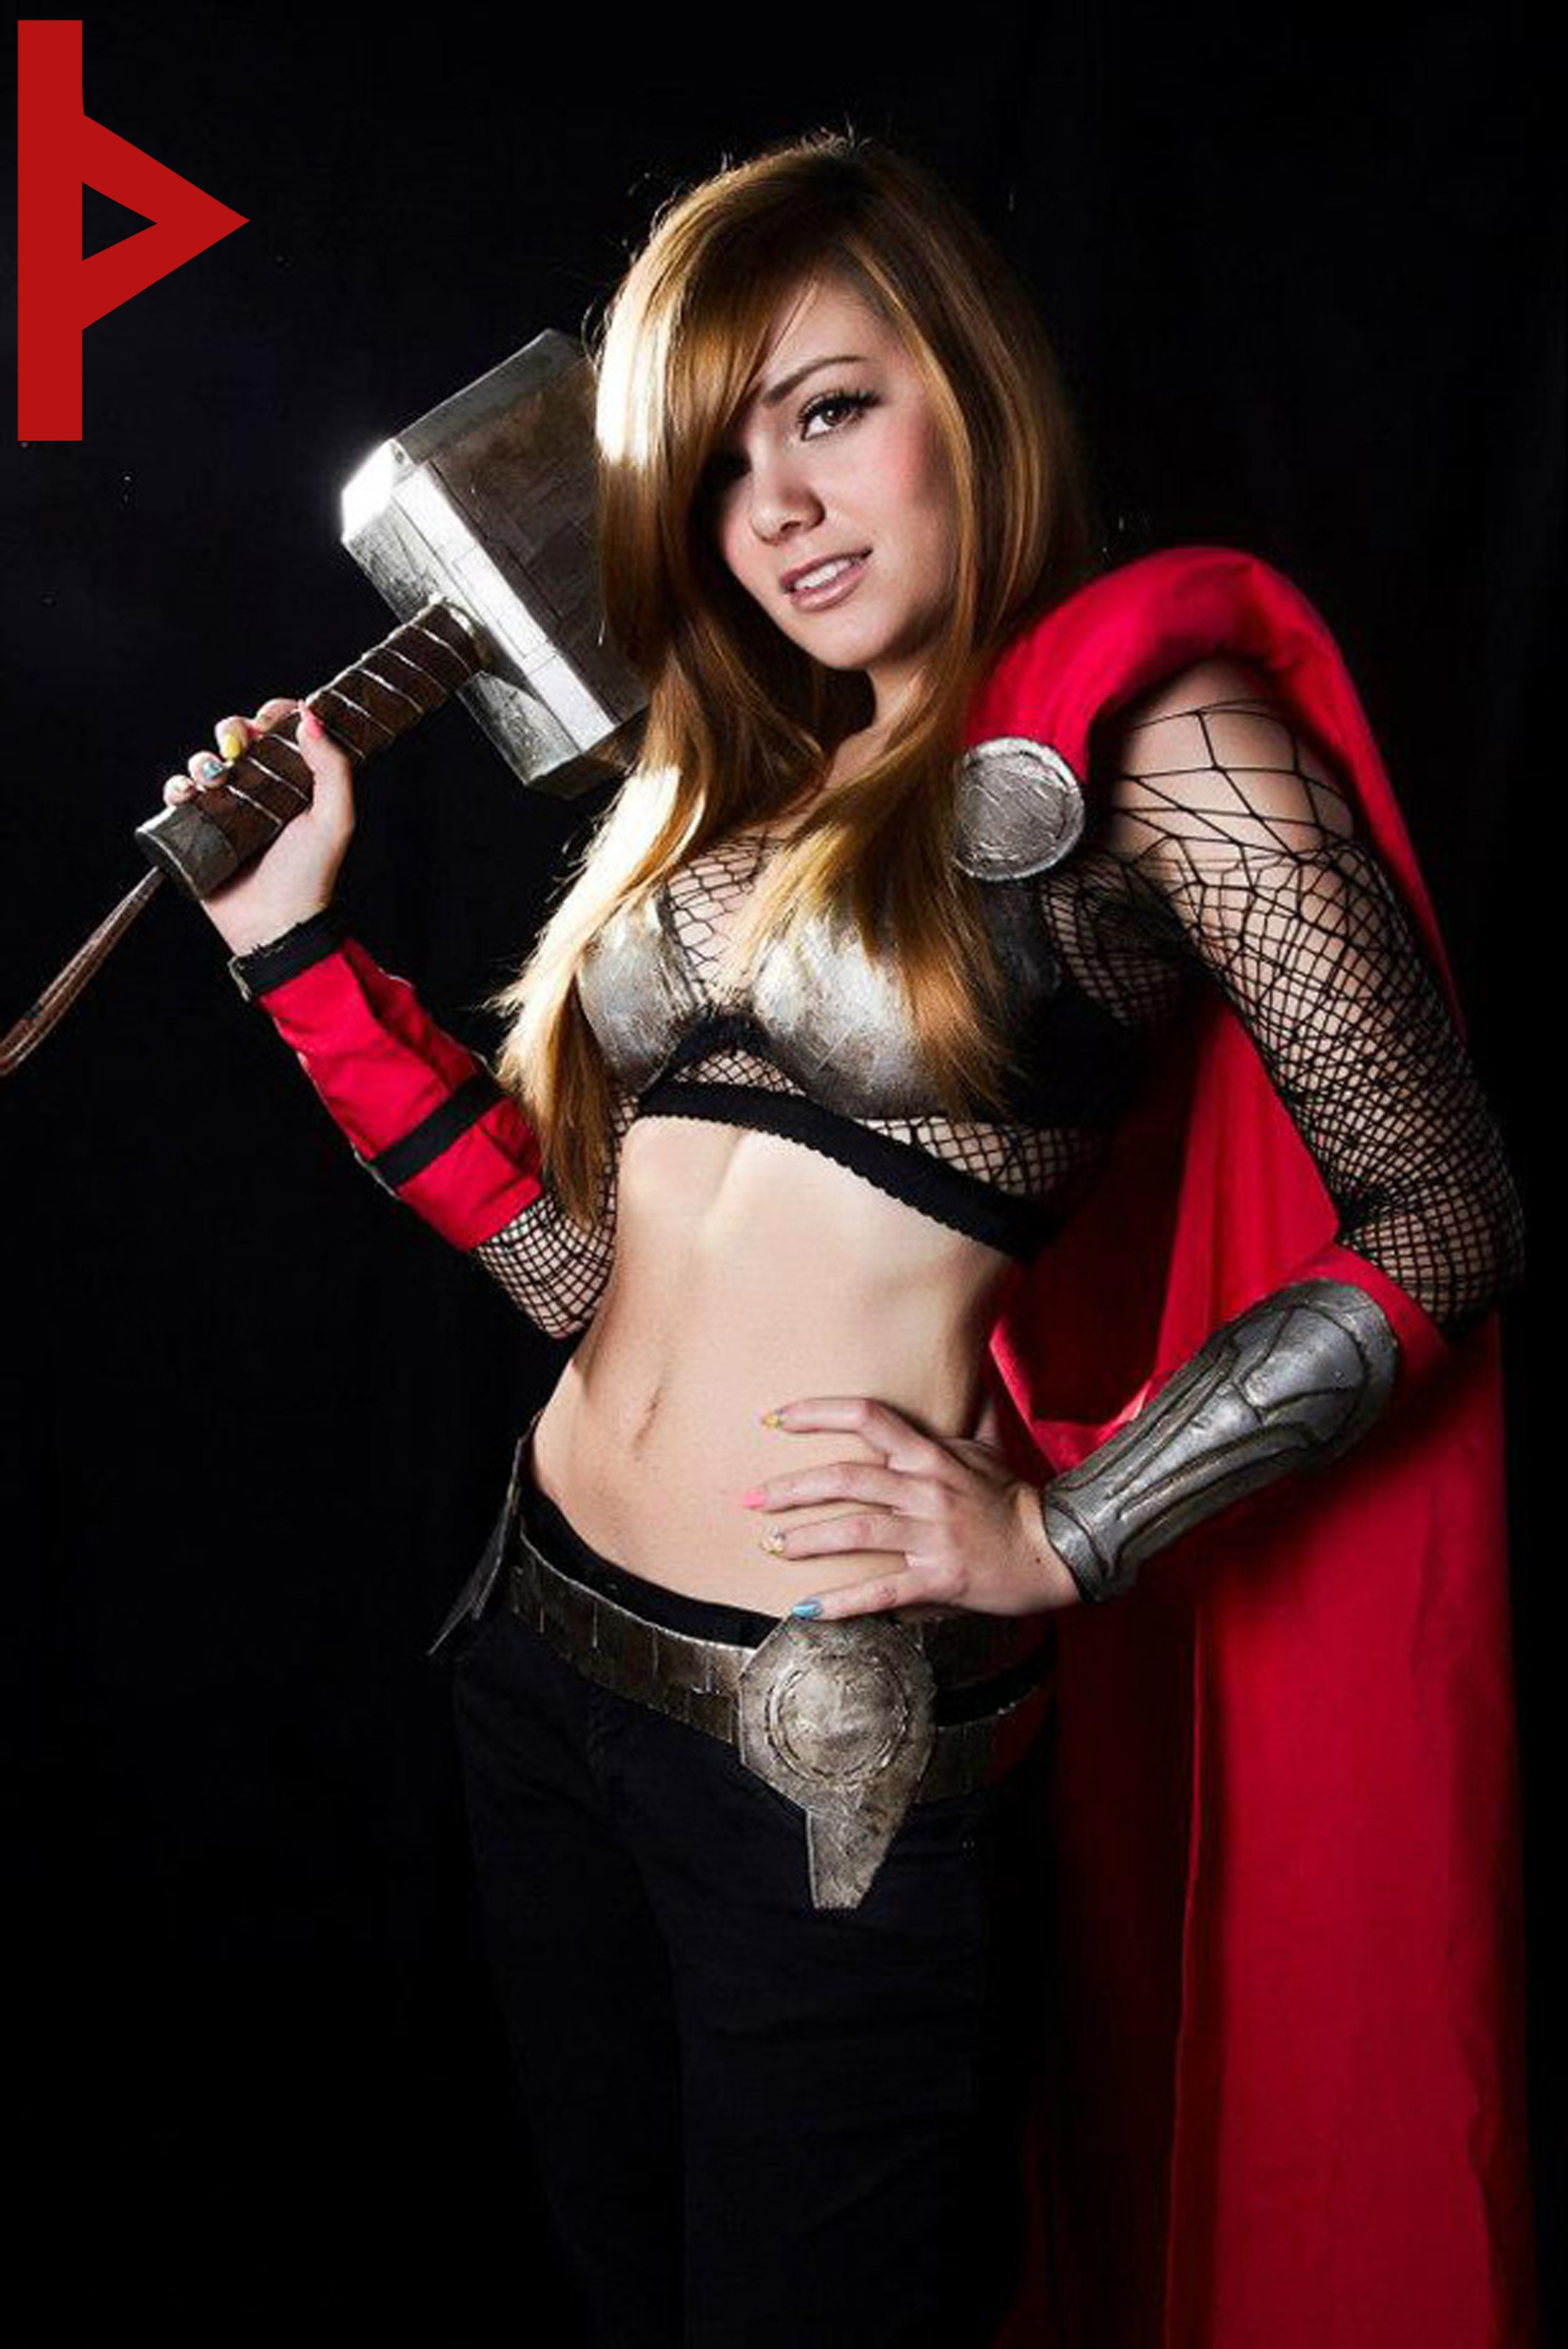 More on Adult Thor Costume: The god of Thunder has a sexy side when she's wearing a Thor Costume for women. This Thor Costume features a printed sleeveless jumpsuit with a silver metallic panel on the top and solid black on the bottom.